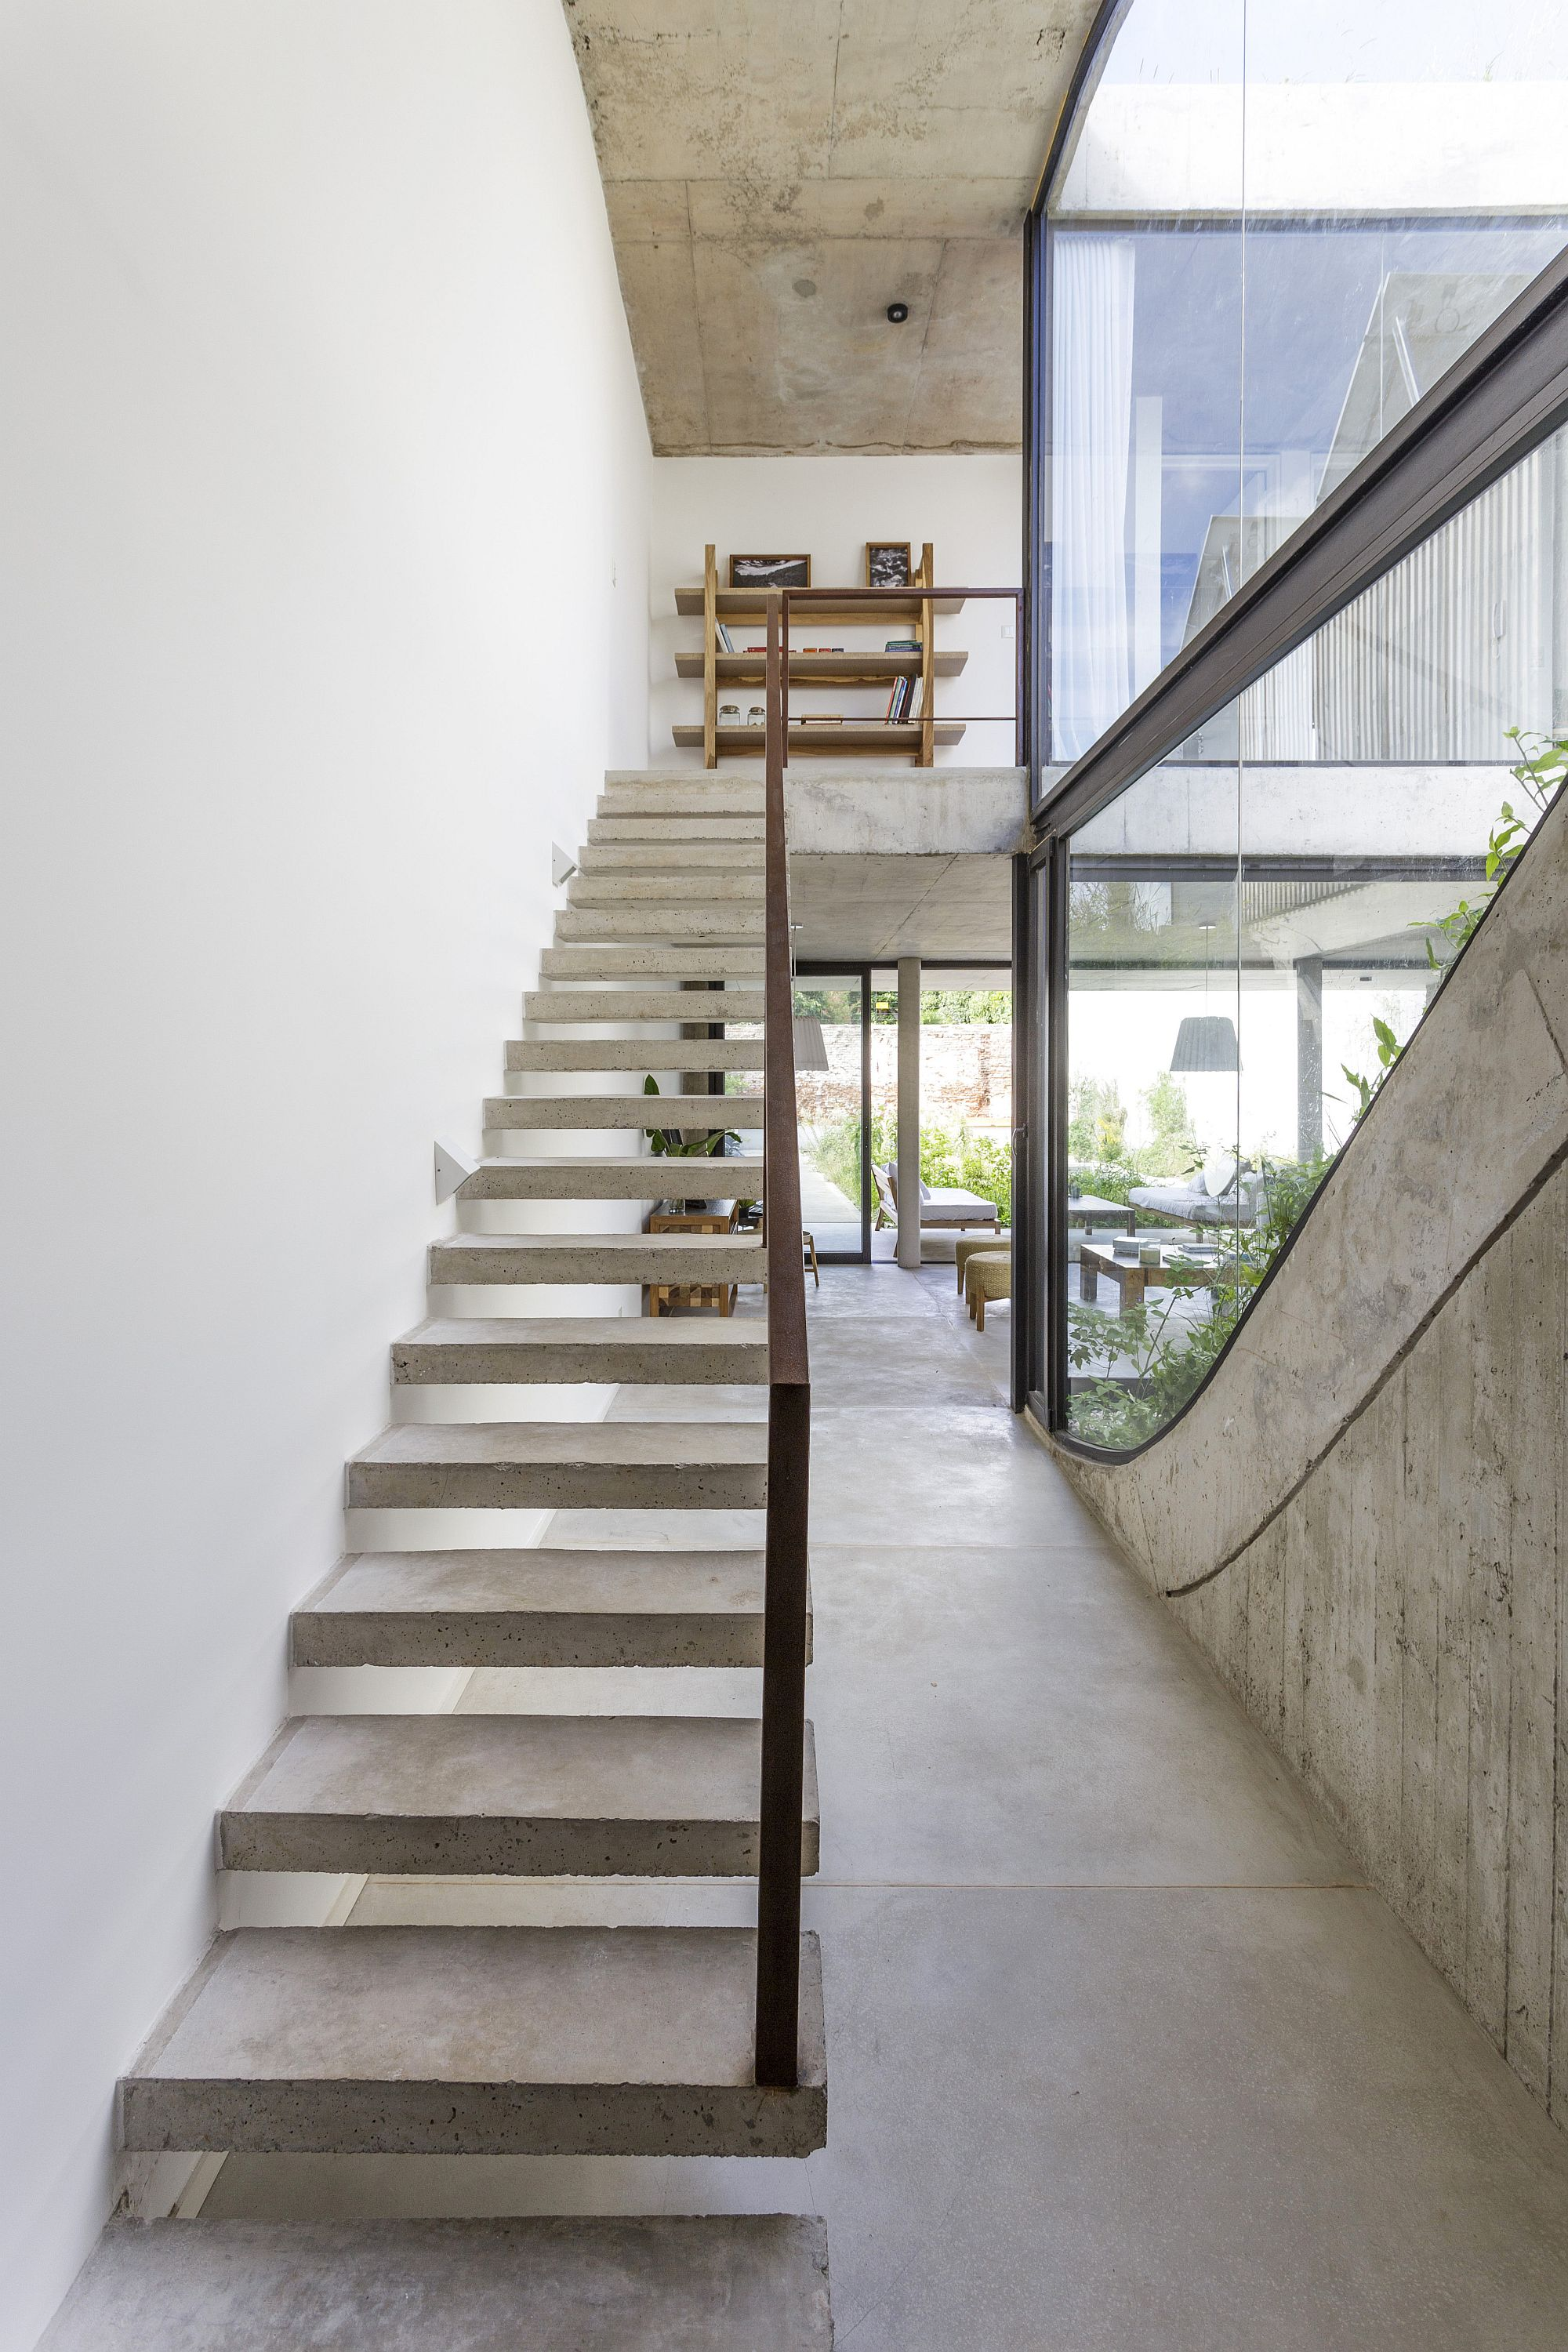 Concrete staircase with steel railing leads to the top level